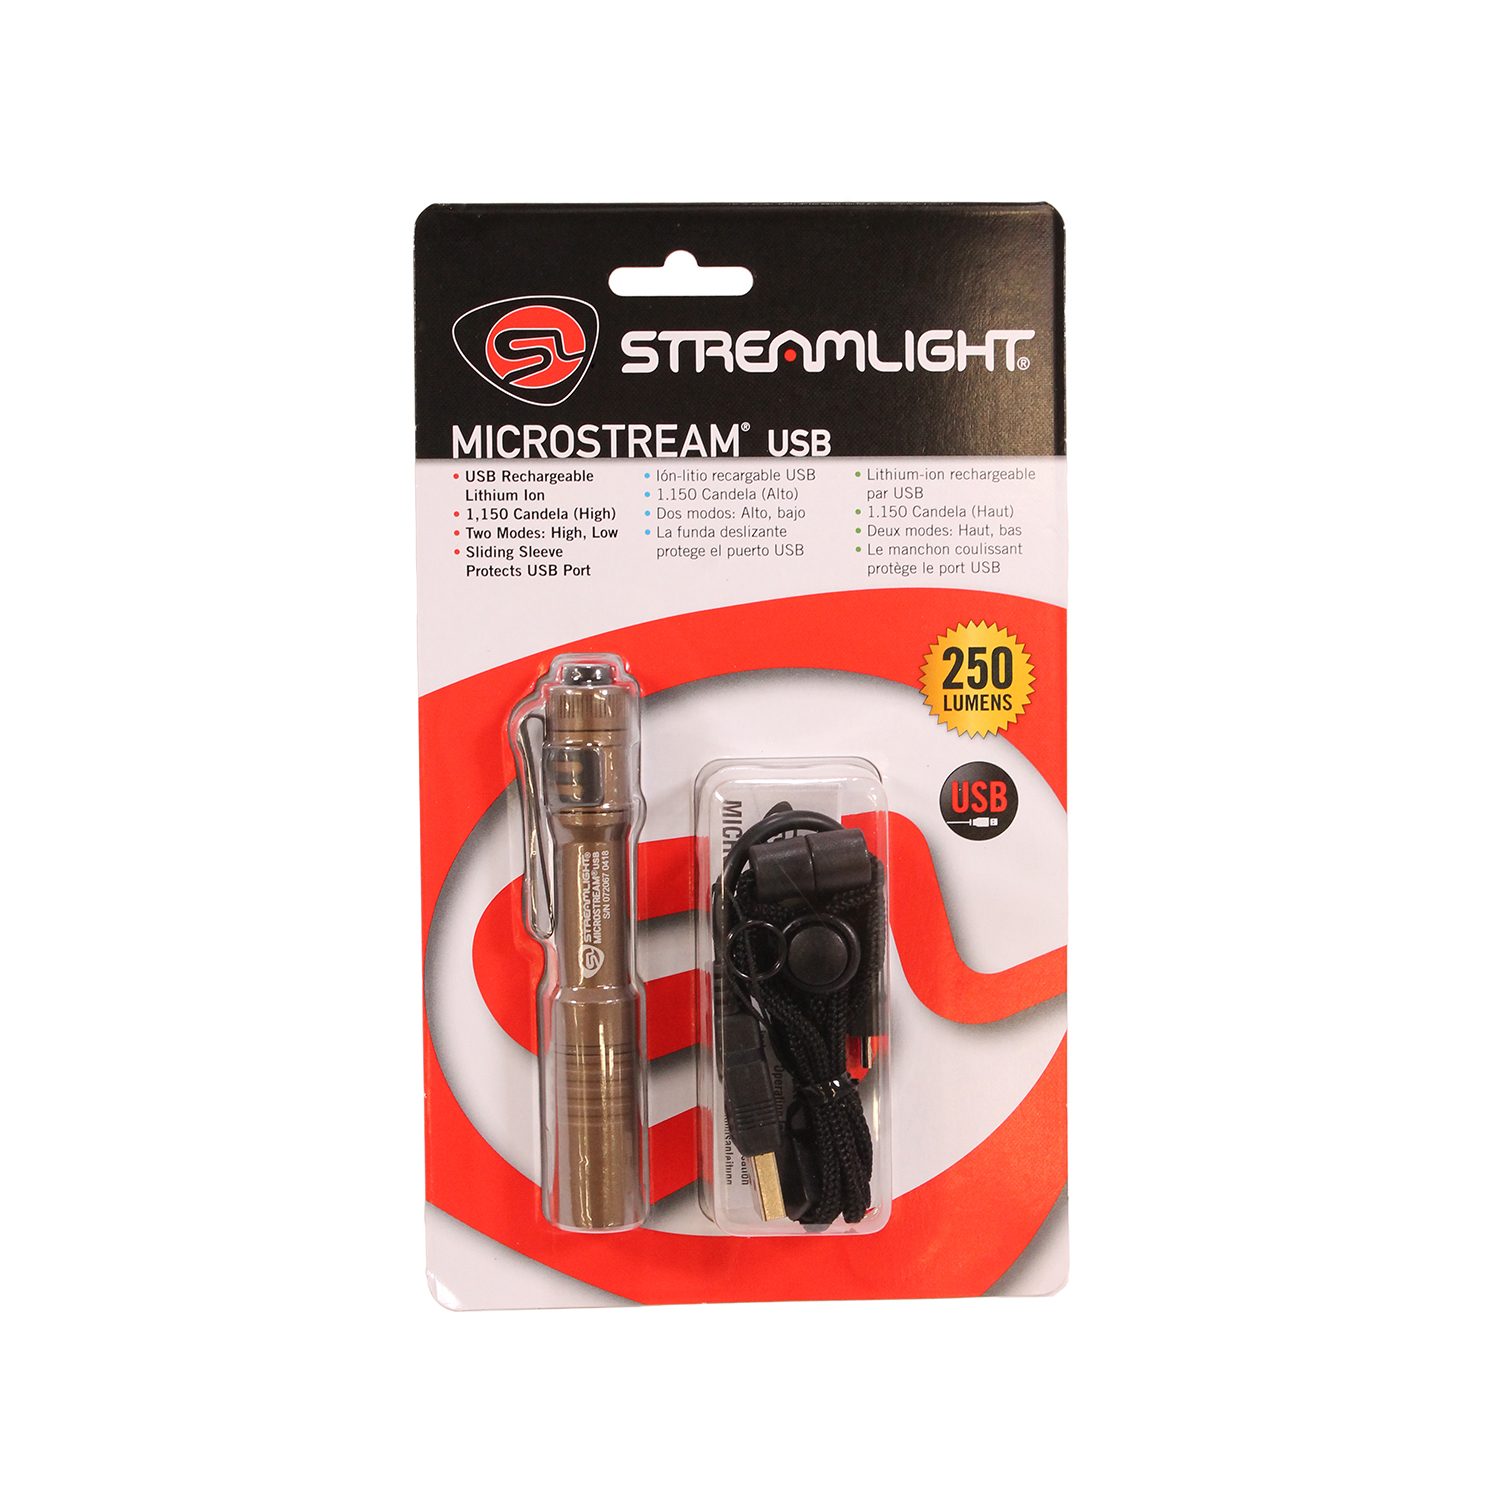 Streamlight Microstream Rechargeable USB LED 250 Lumen Flashlight, Tan - 66608